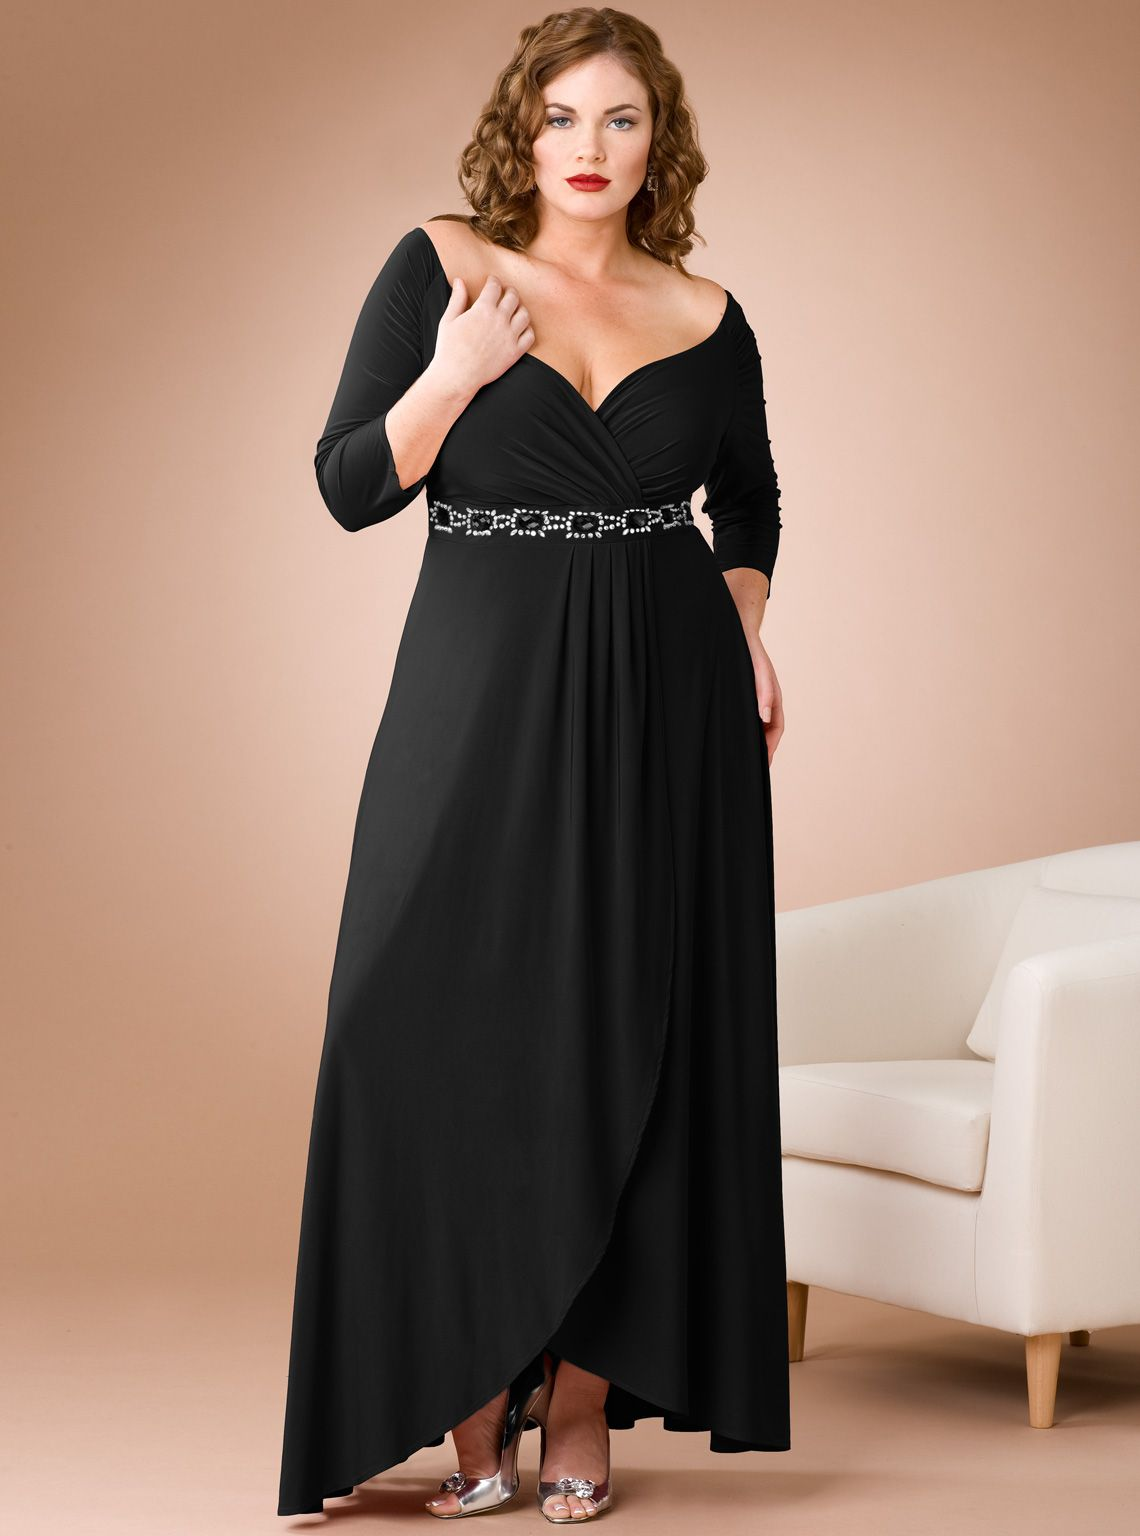 Be Style Icon With Plus Size Designer Clothing: Get Better Dressing ...